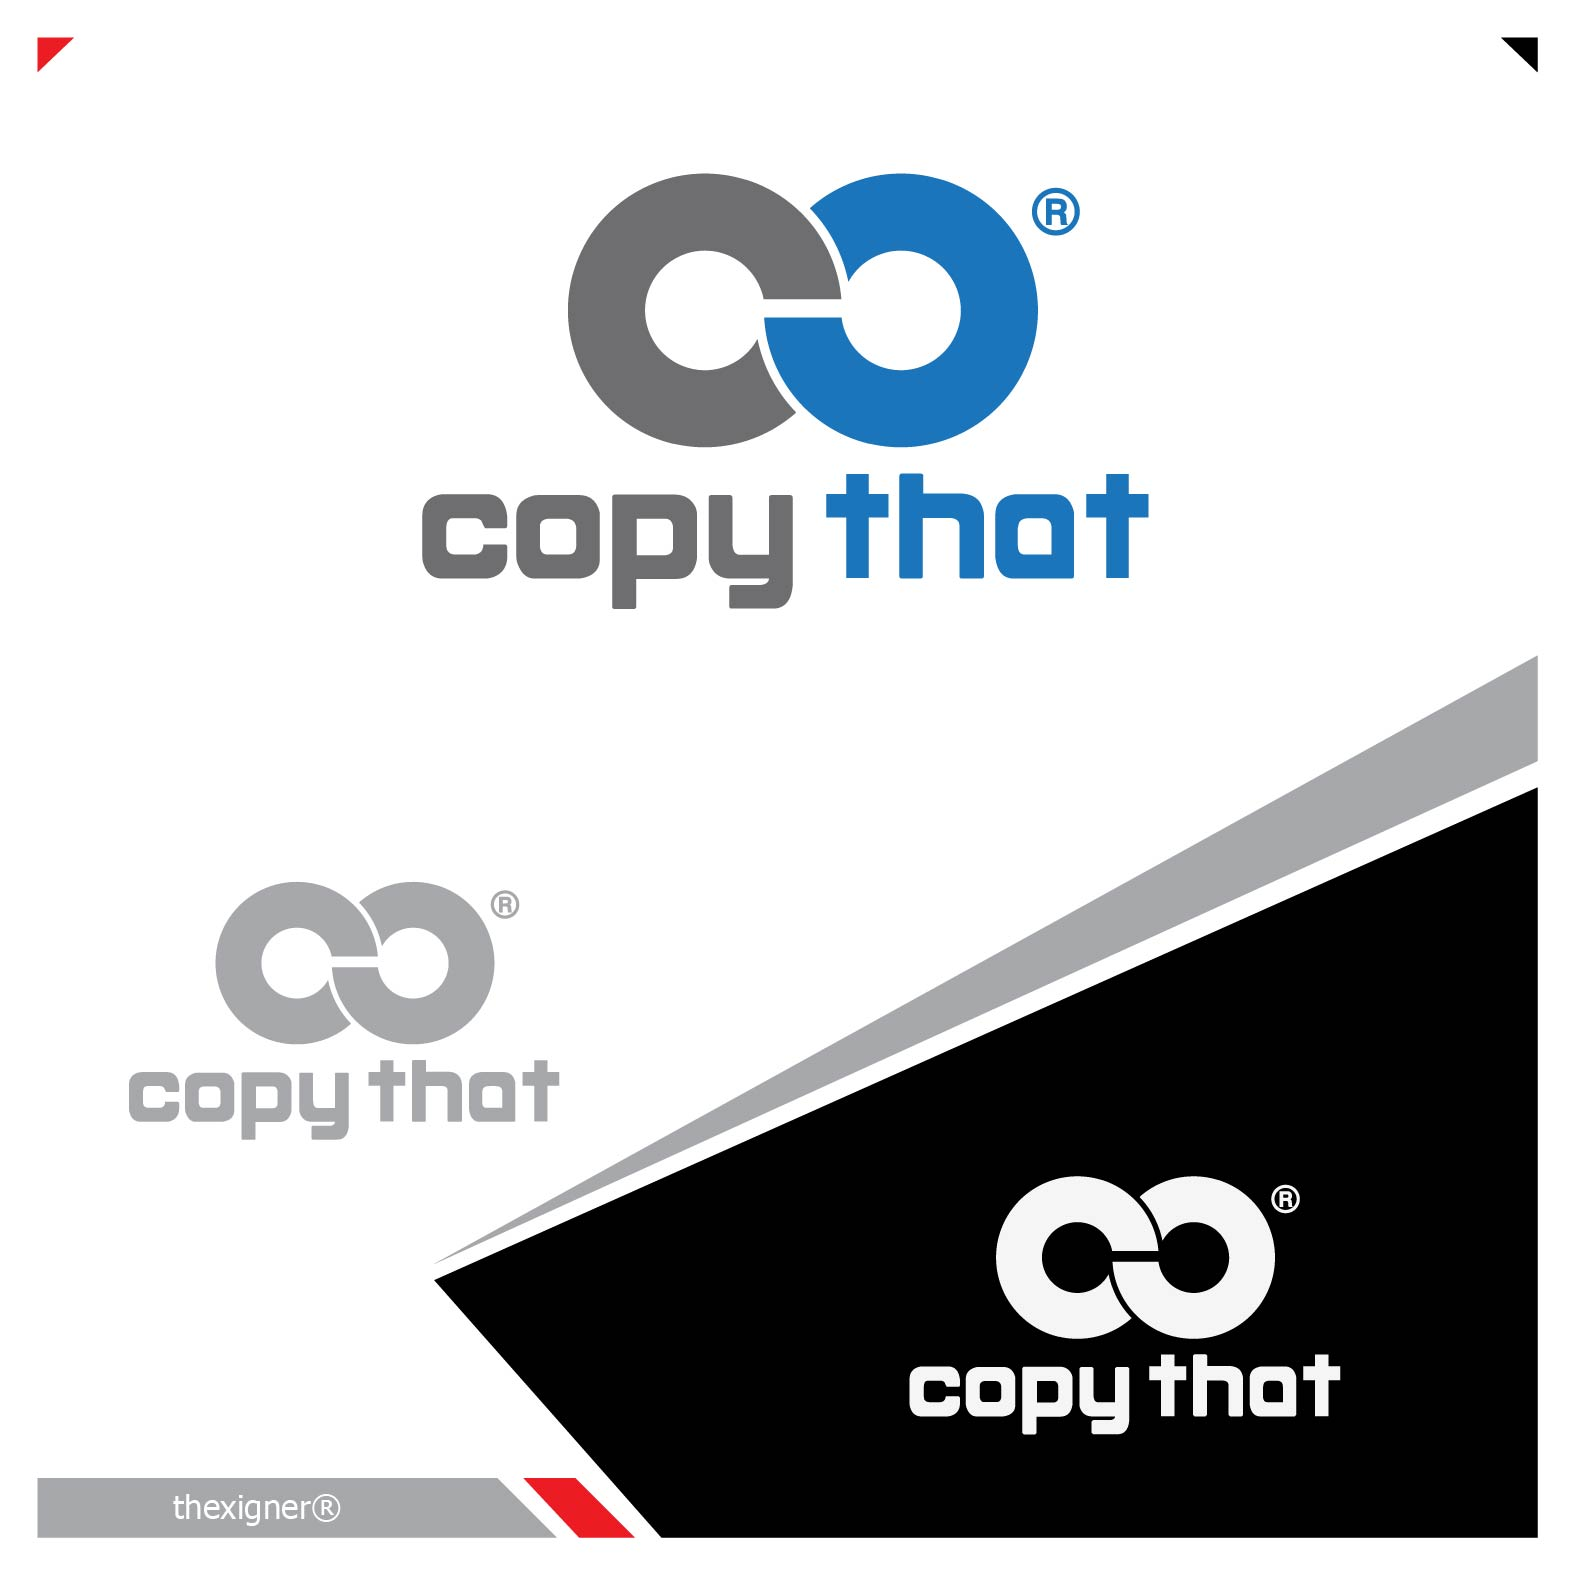 Logo Design by lagalag - Entry No. 22 in the Logo Design Contest Inspiring Logo Design for CopyThat.